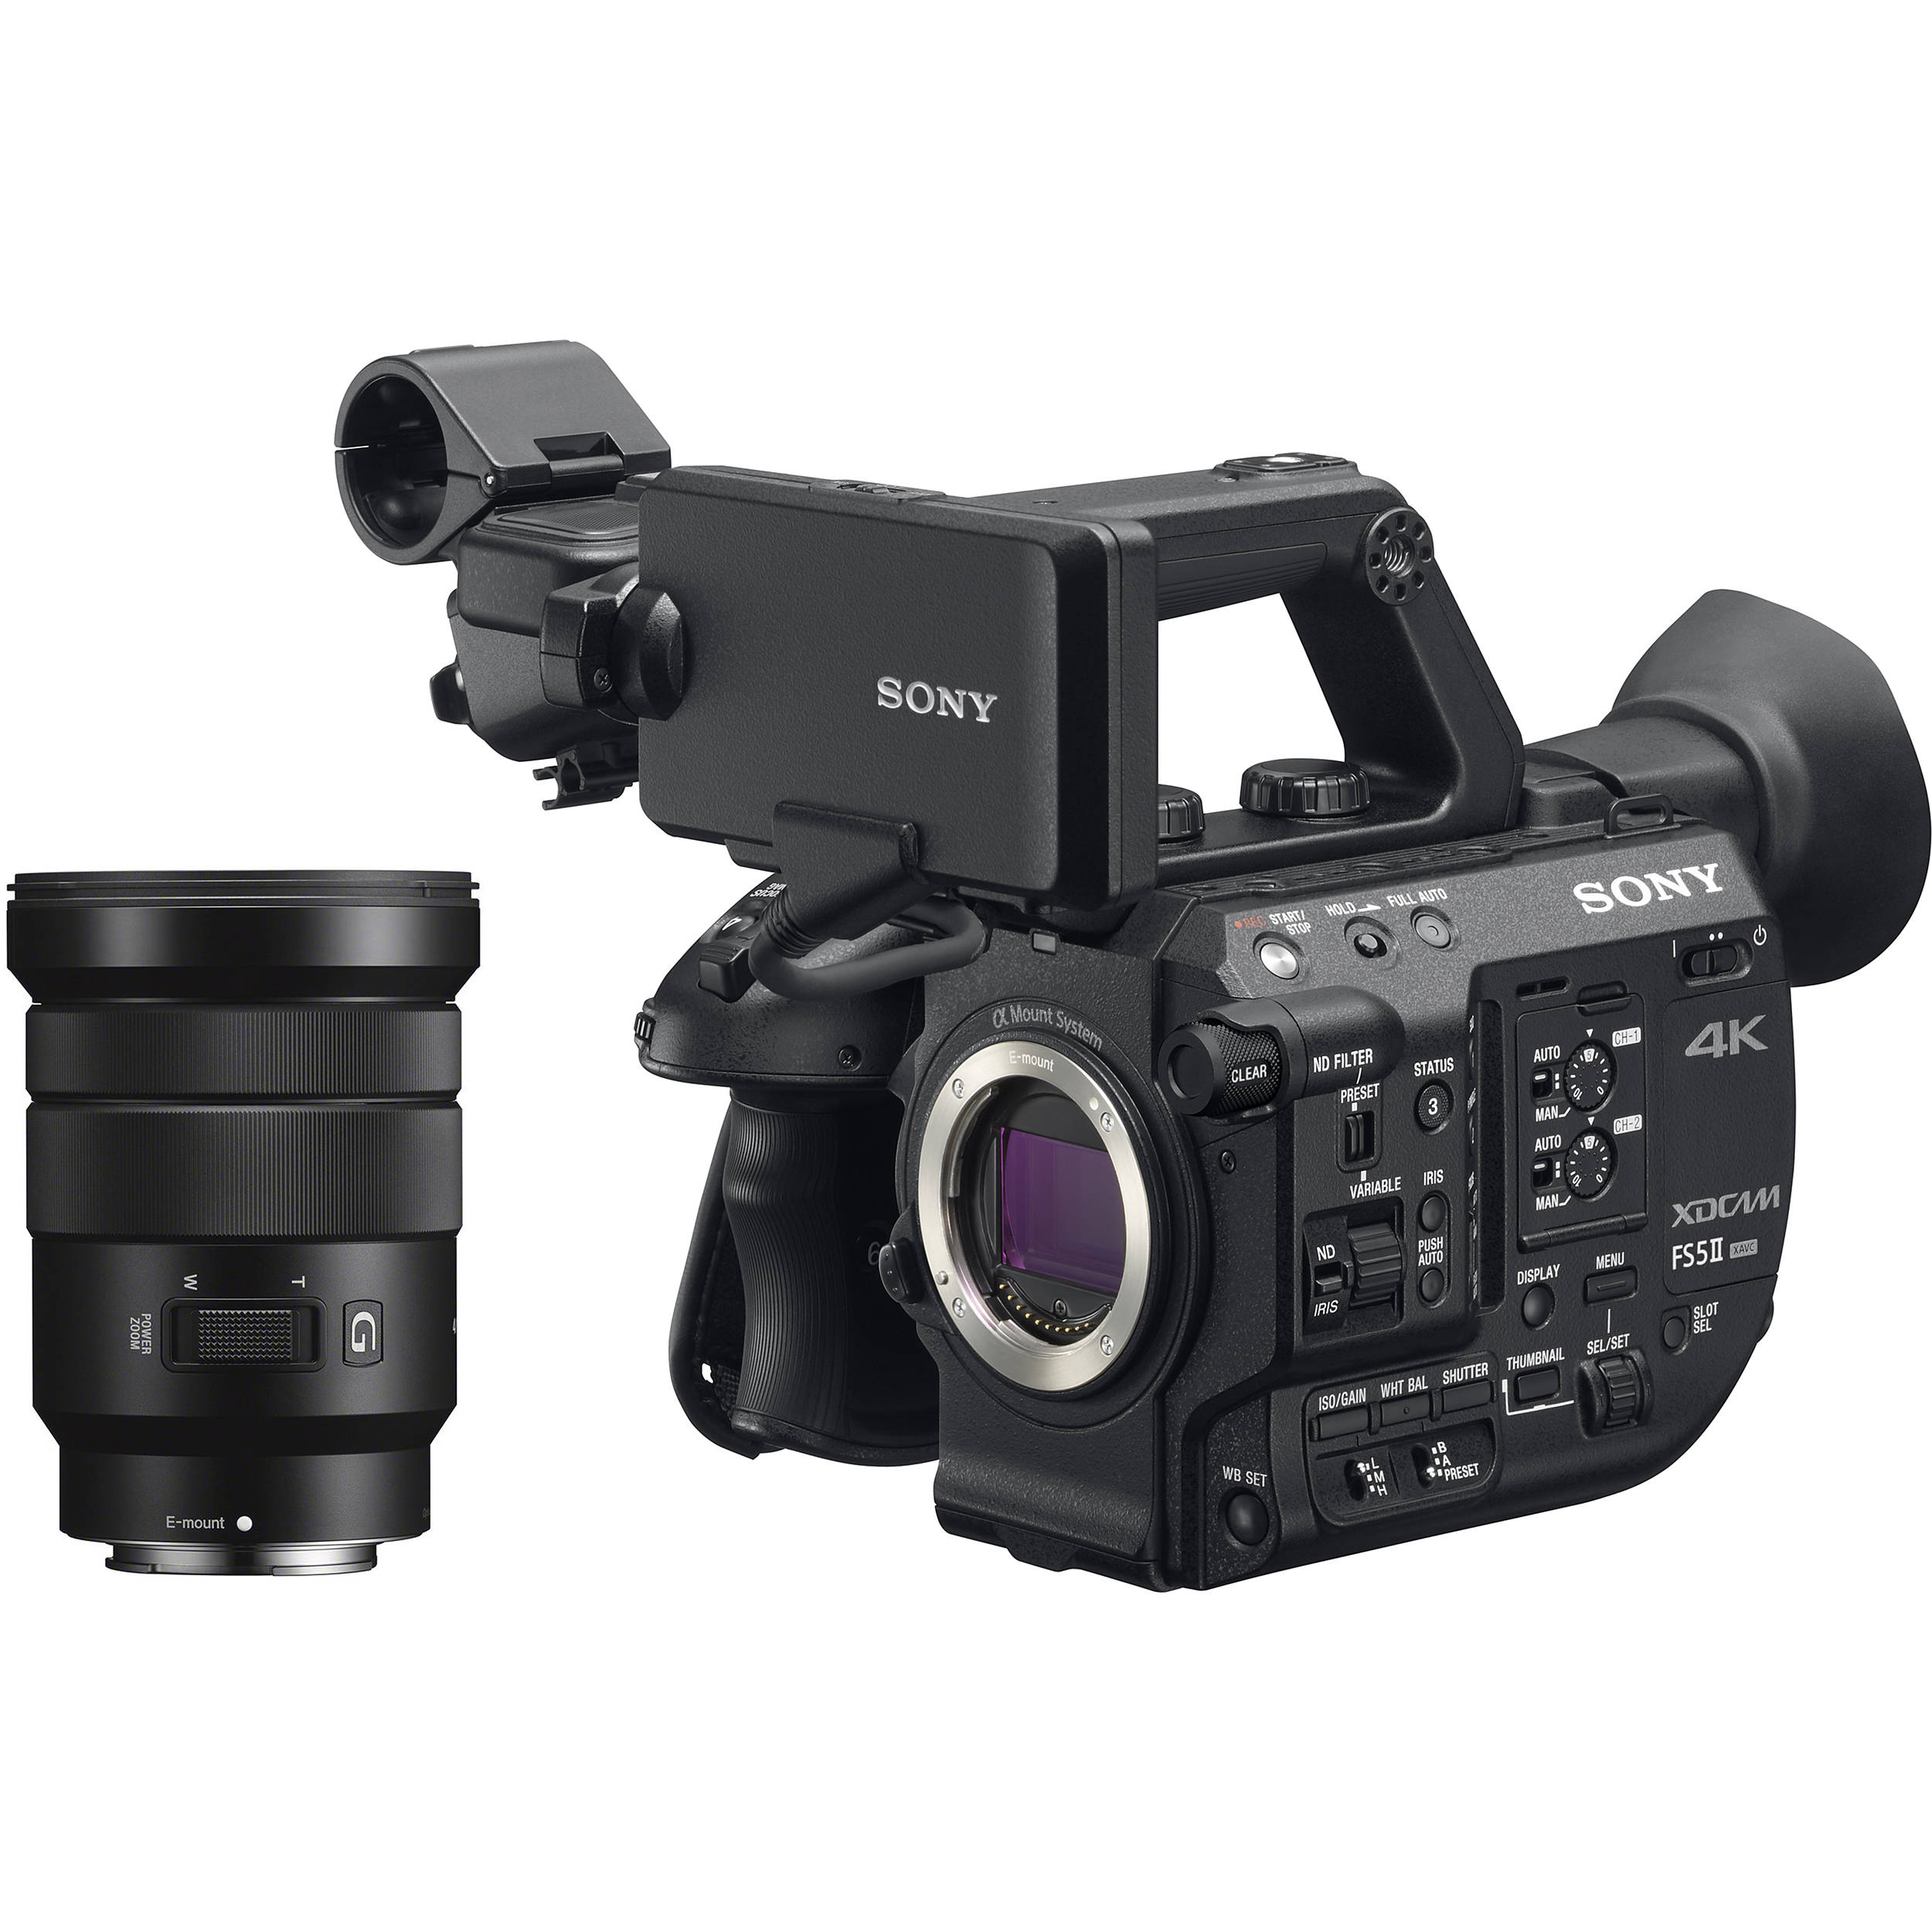 Sony PXW-FS5M2 4K XDCAM Super 35mm Compact Camcorder PXW